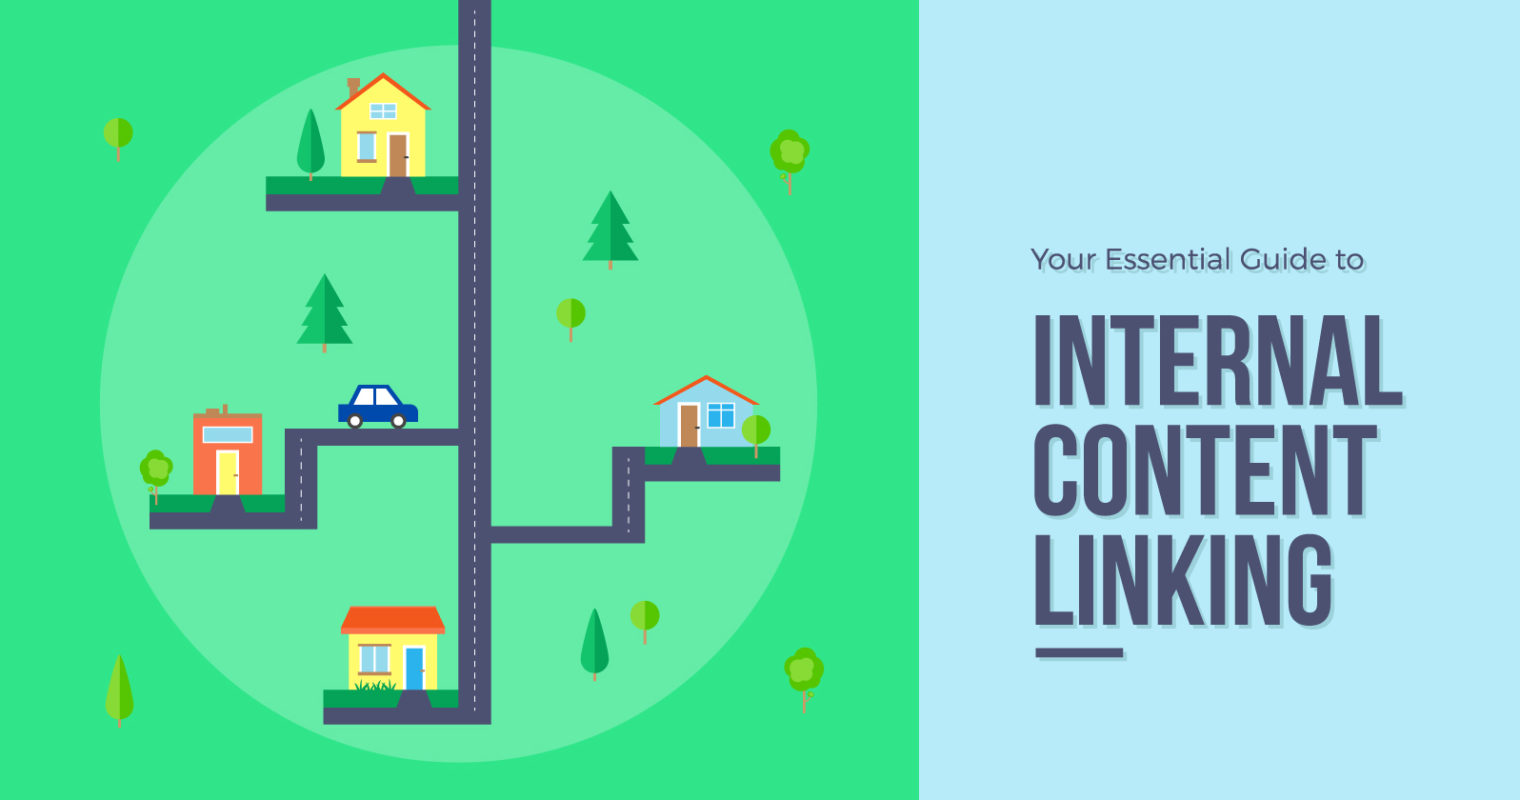 Your Essential Guide to Internal Content Linking